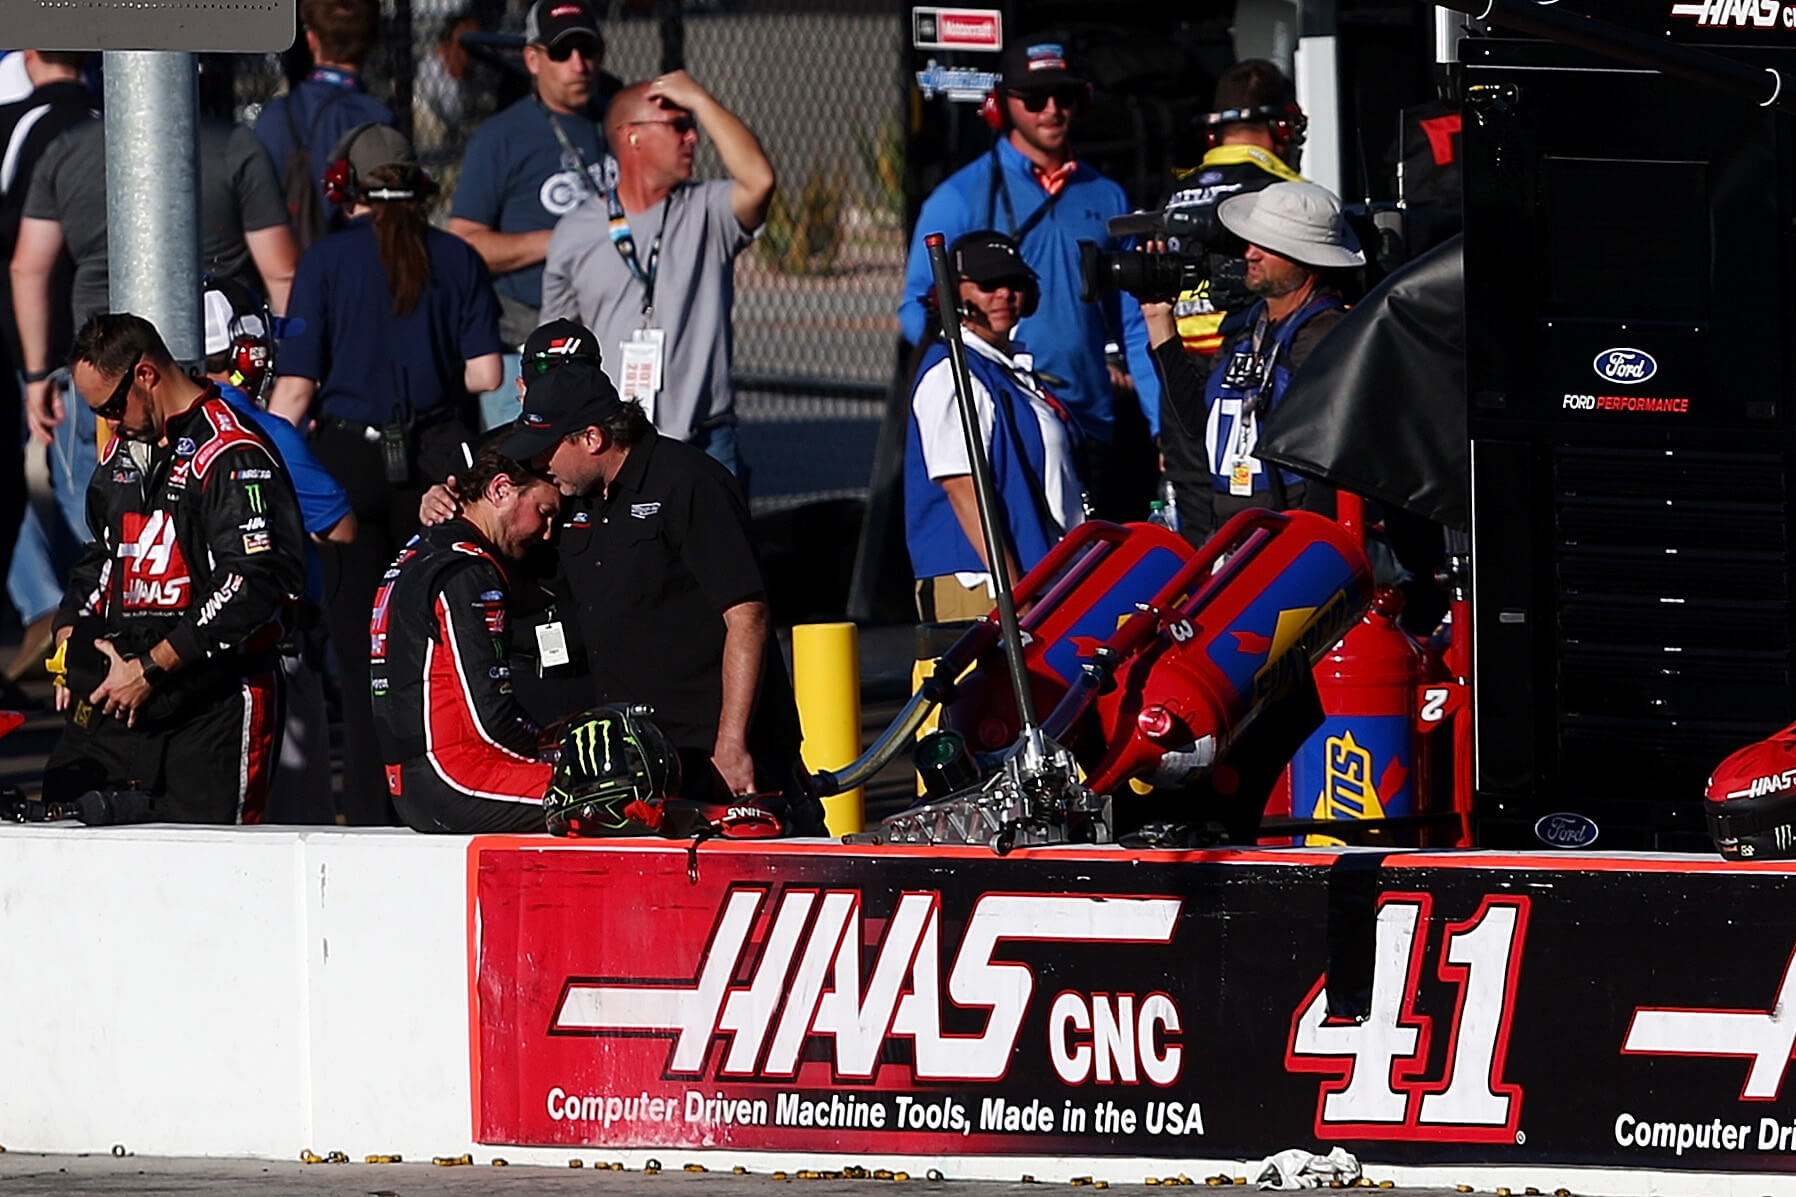 Kurt Busch and Tony Stewart embrace after the NASCAR race at ISM Raceway